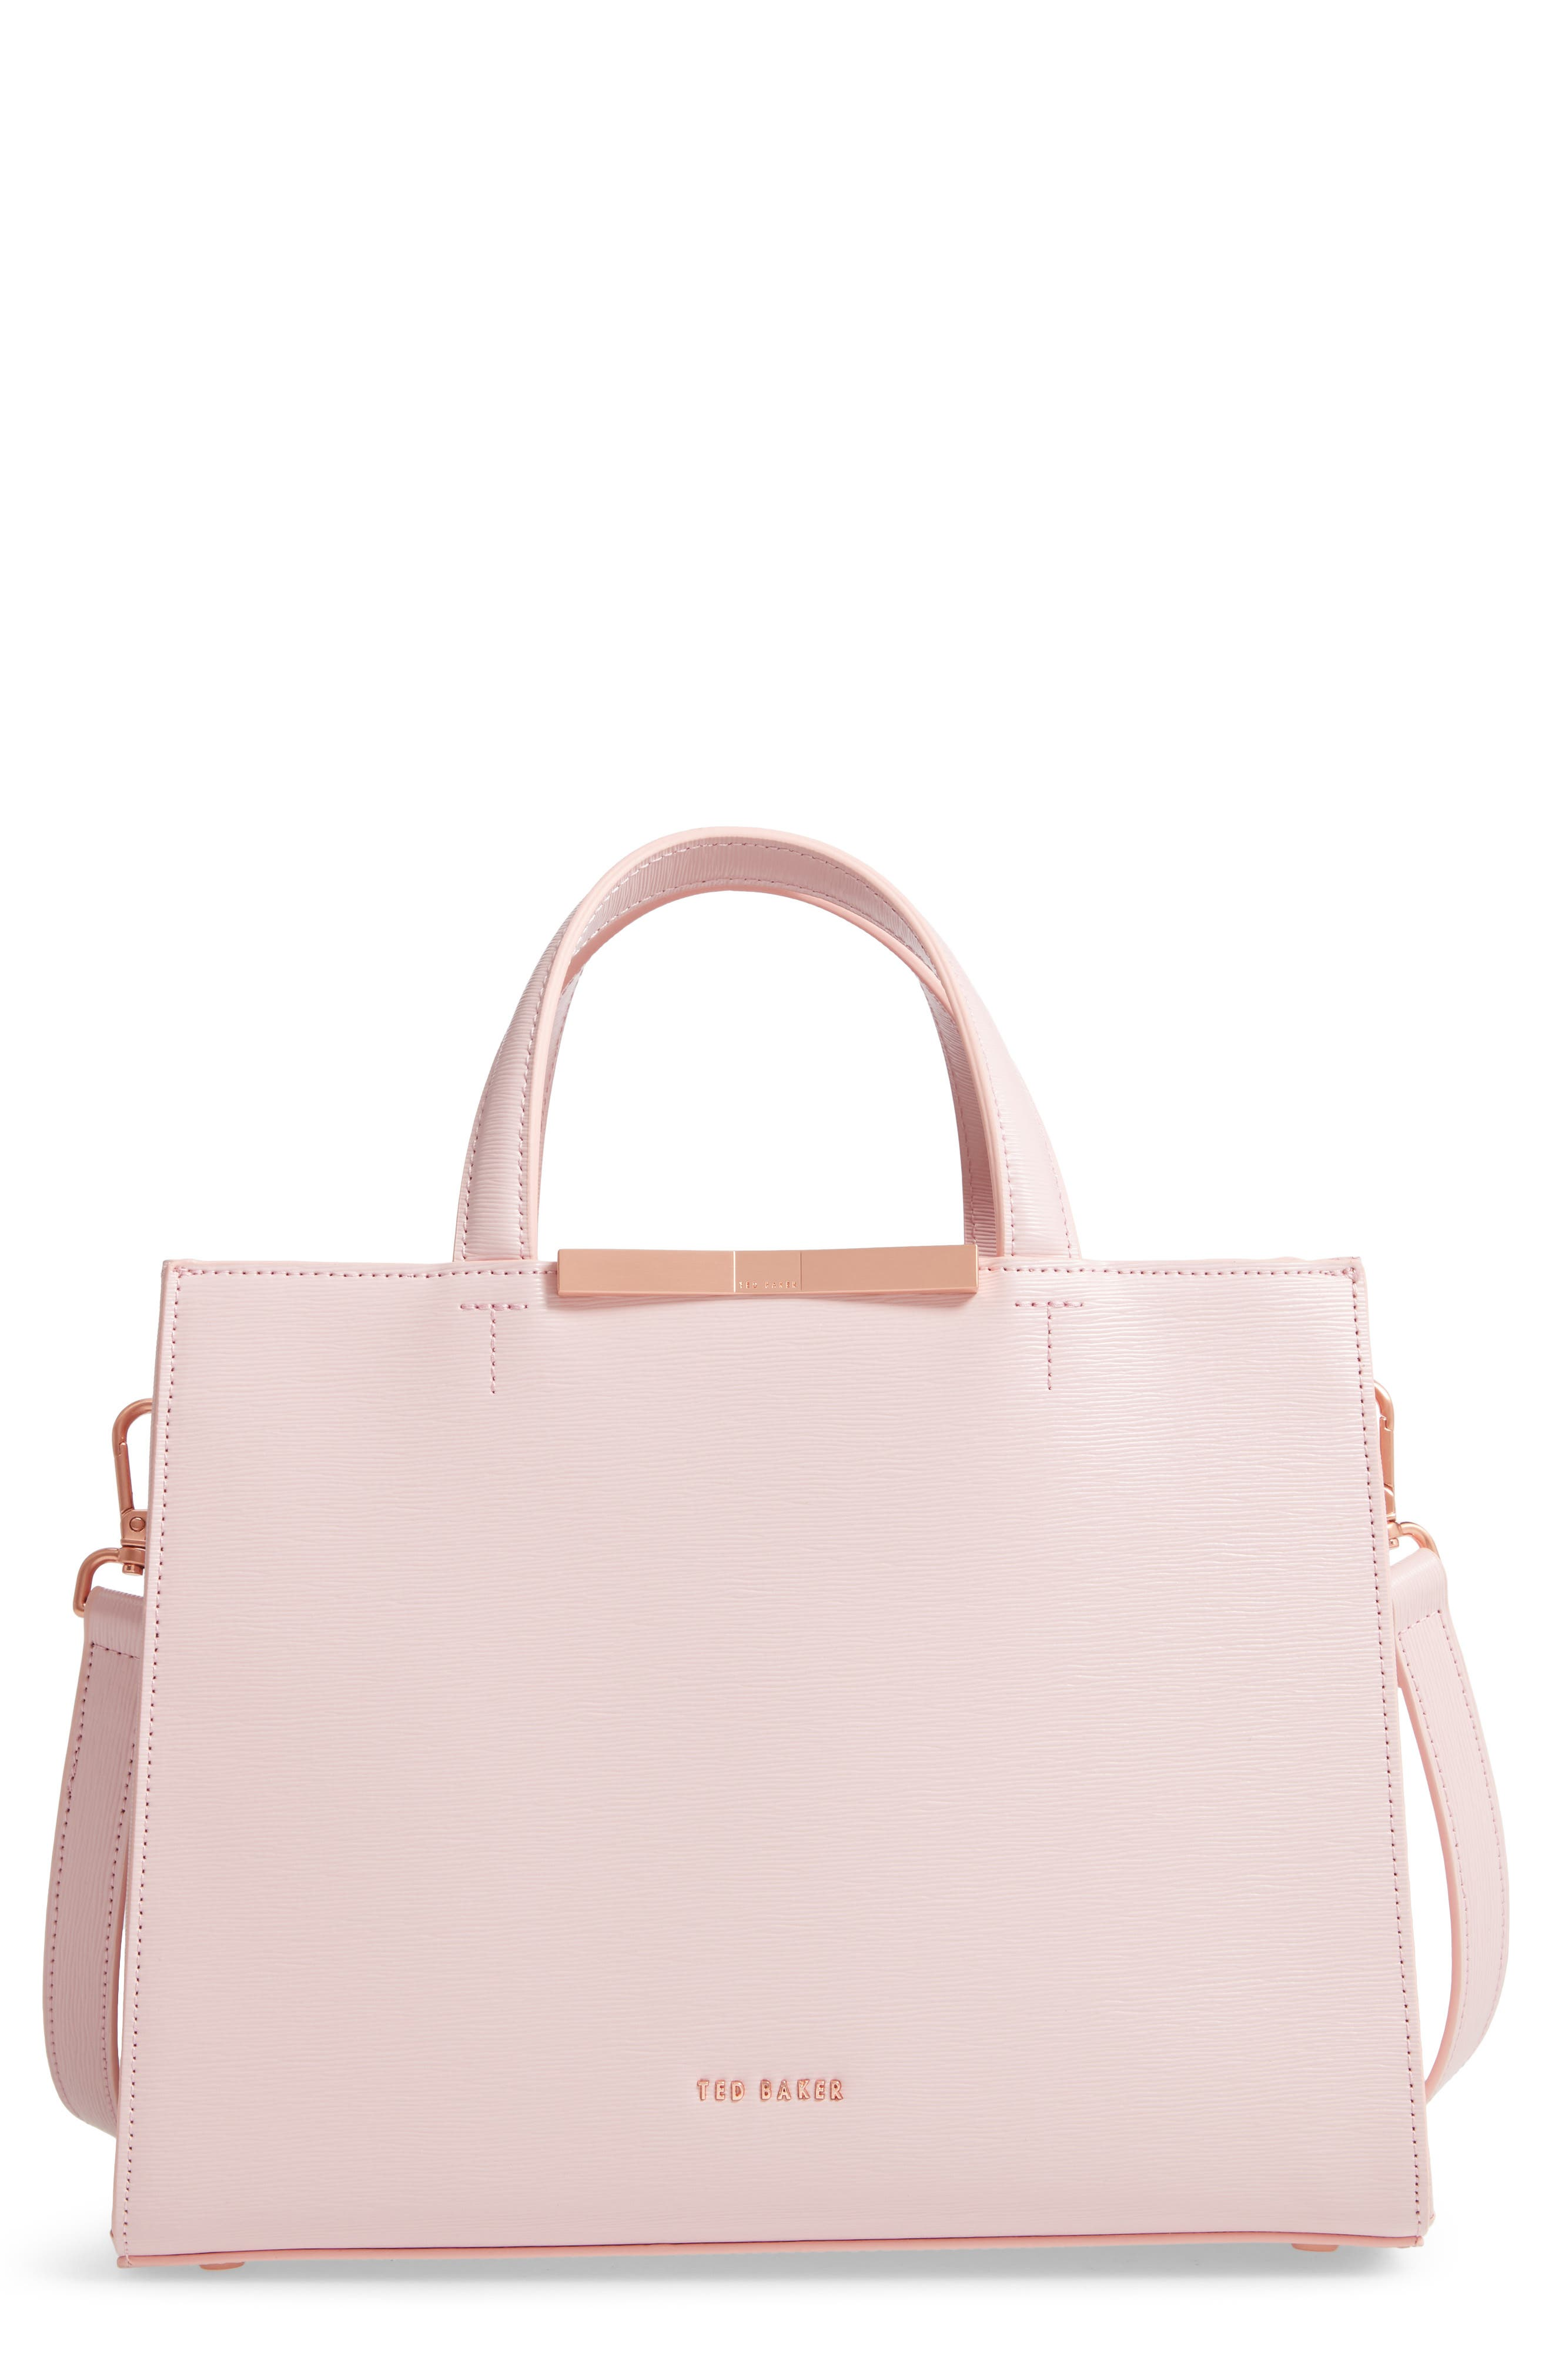 TED BAKER LONDON Jaanet Leather Satchel, Main, color, LIGHT PINK